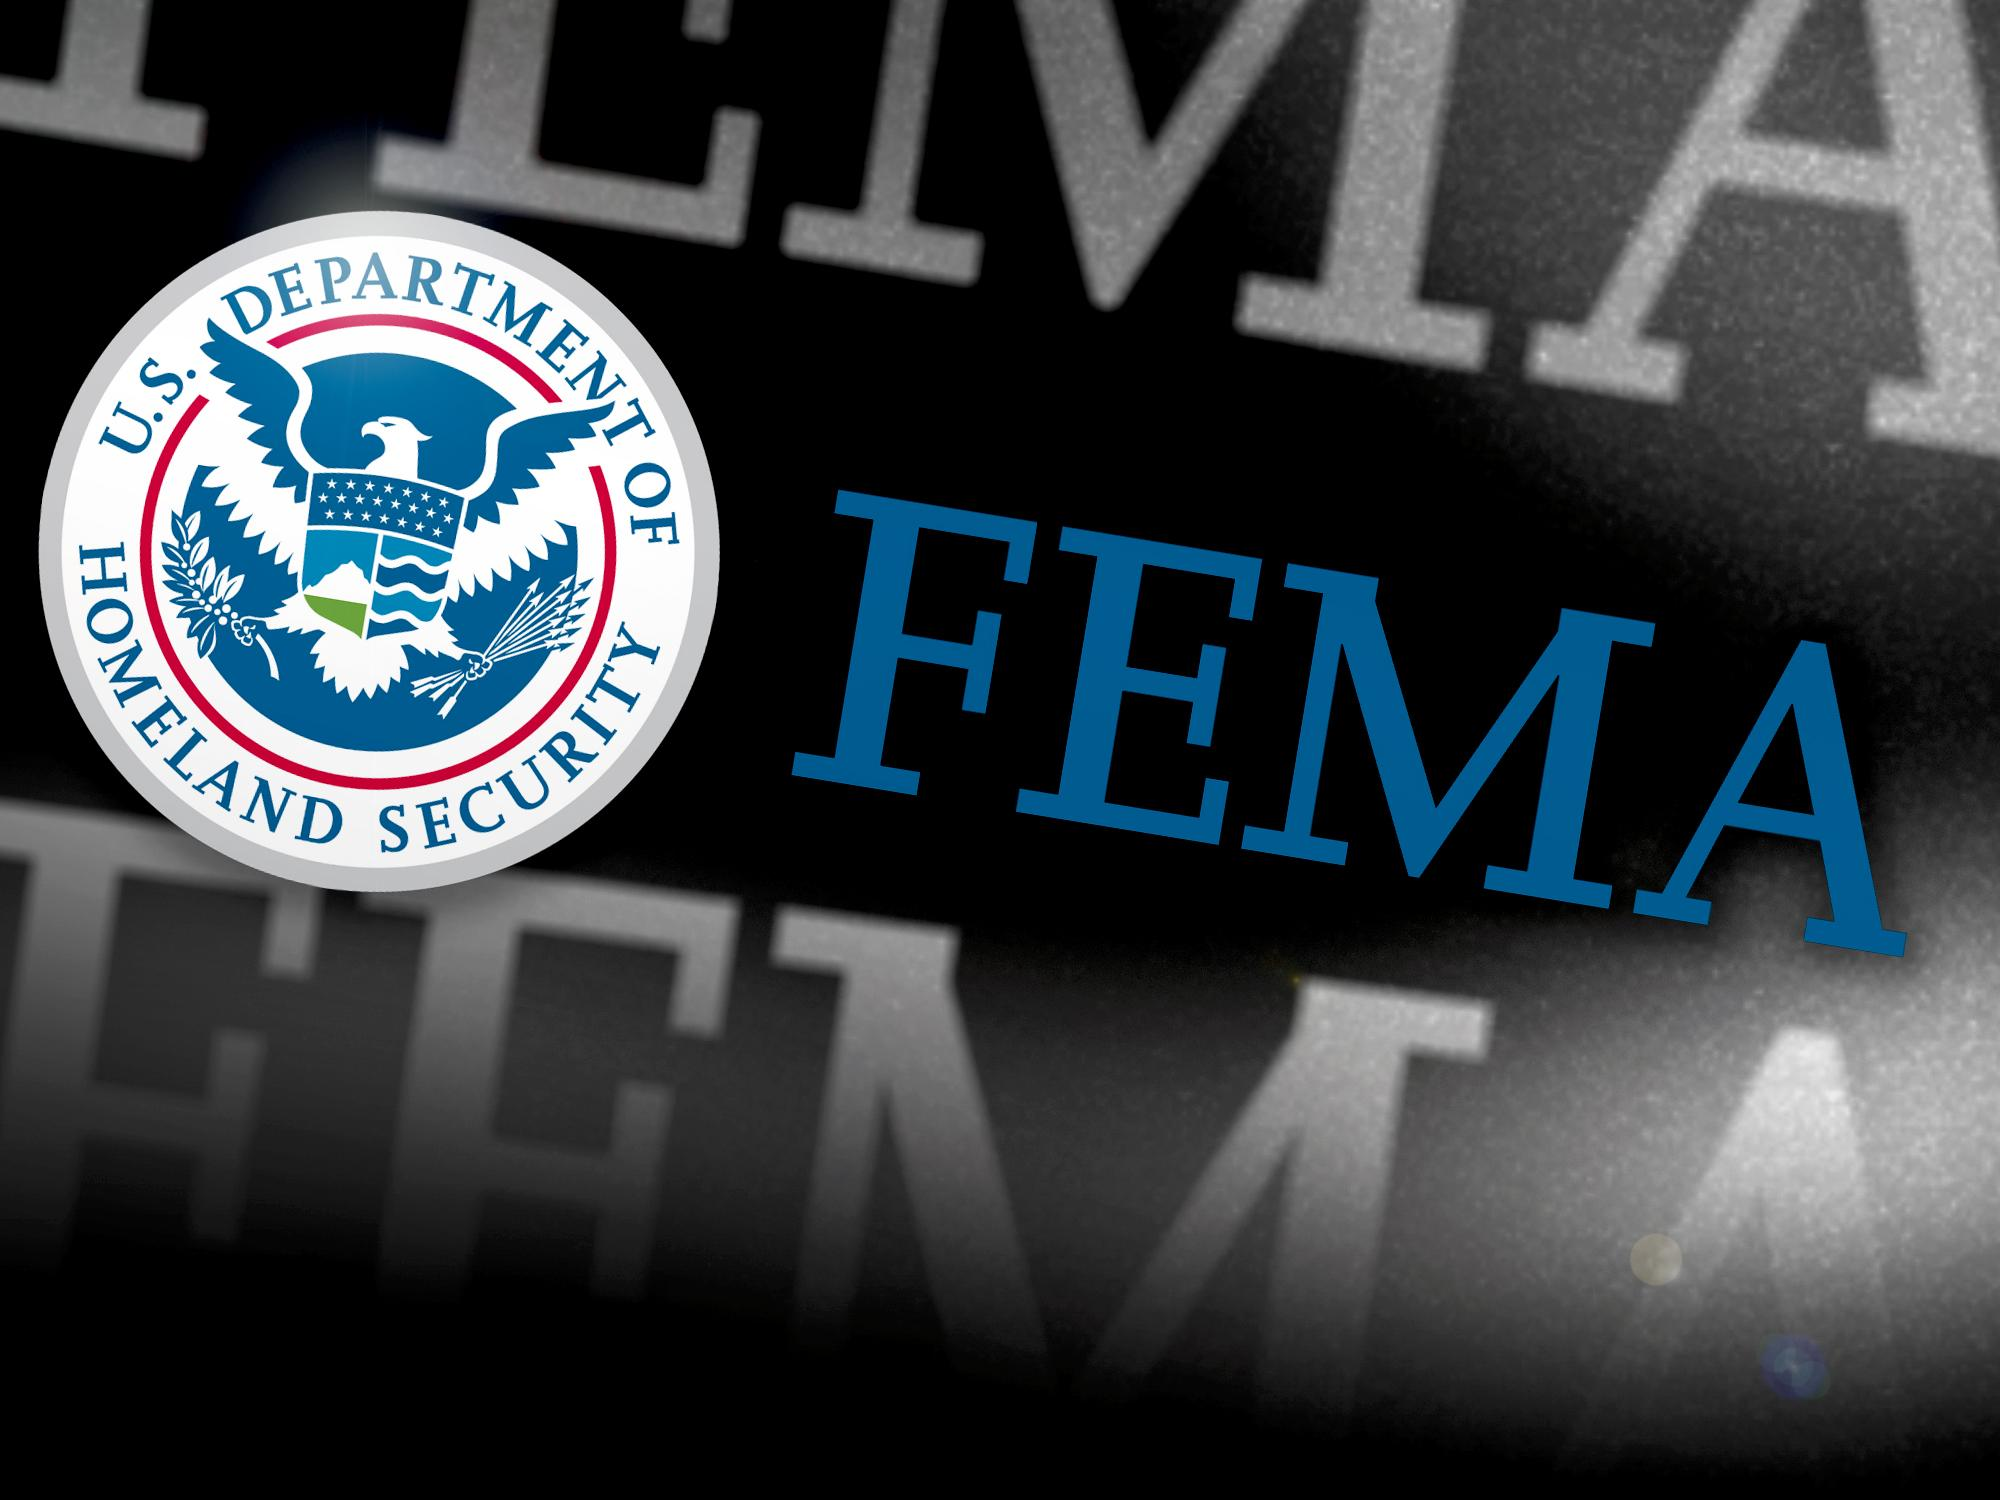 Macon County to Receive $1.1 Million in FEMA Funding ...